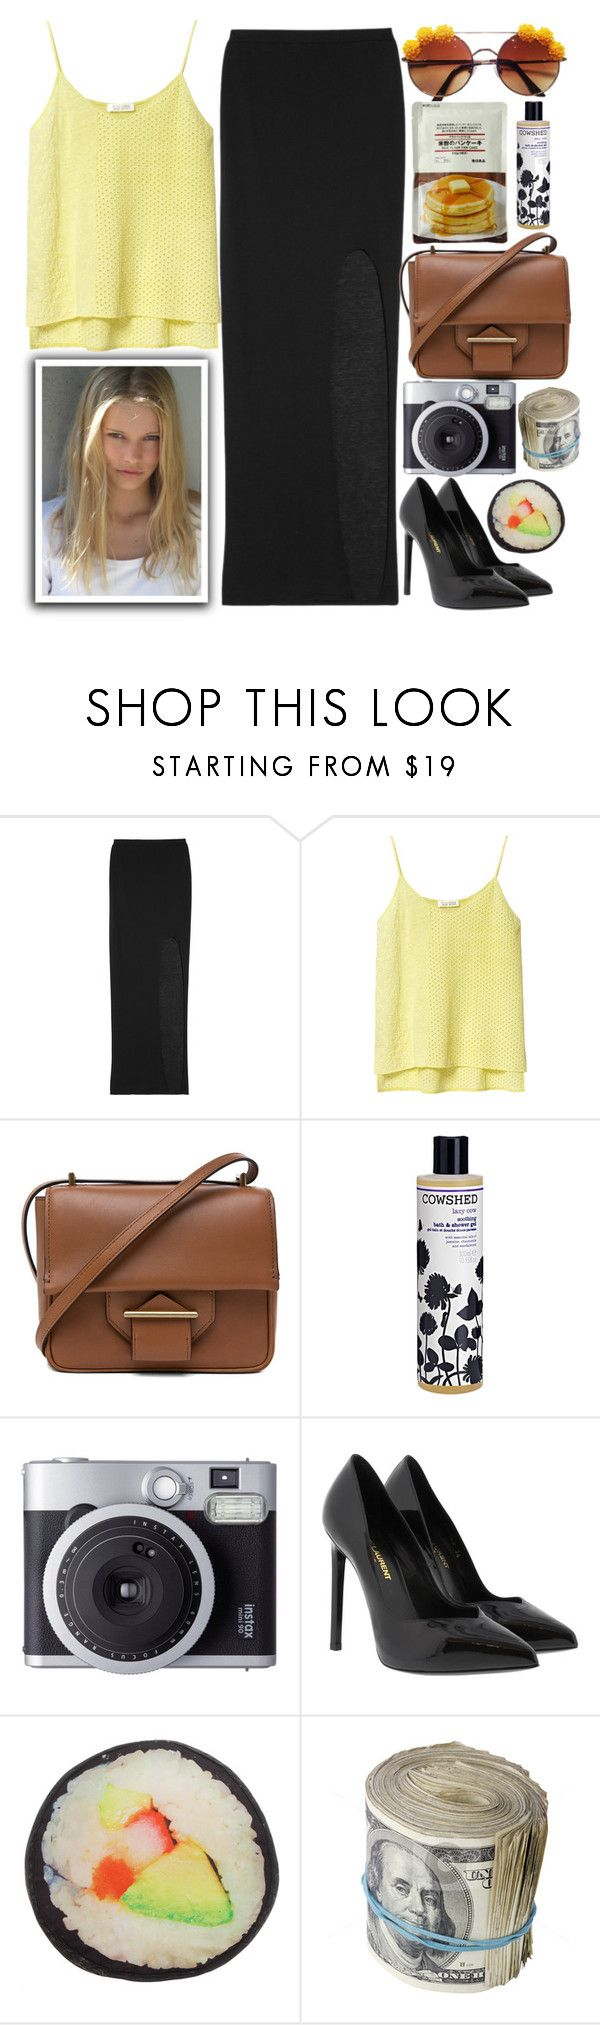 """1262"" by melanie-avni ❤ liked on Polyvore featuring Helmut Lang, Zara, Reed Krakoff, Cowshed, Fujifilm and Yves Saint Laurent"